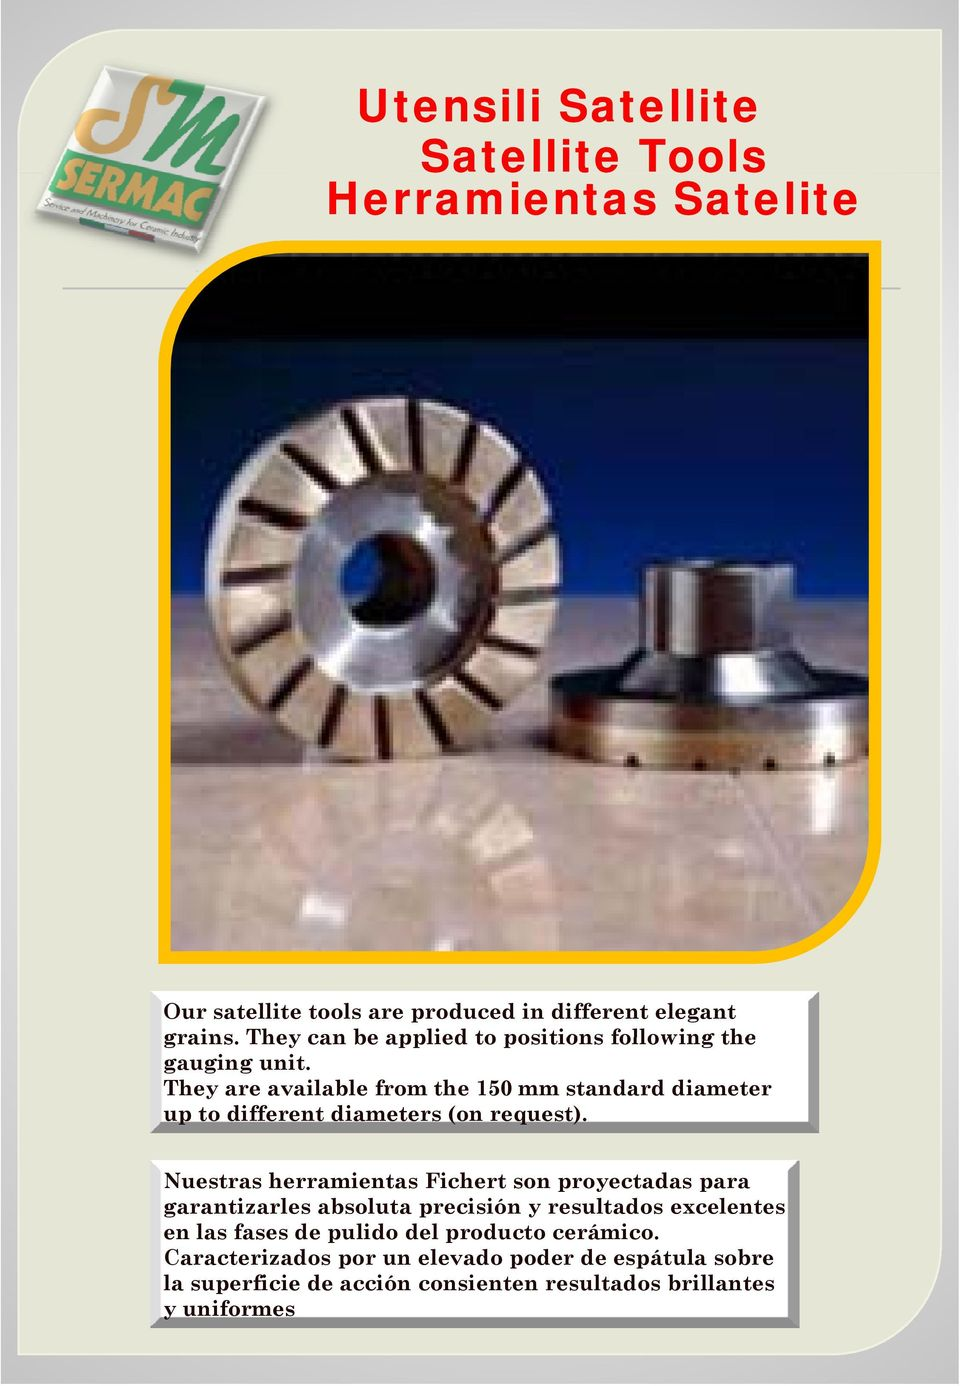 They are available from the 150 mm standard diameter up to different diameters (on request).